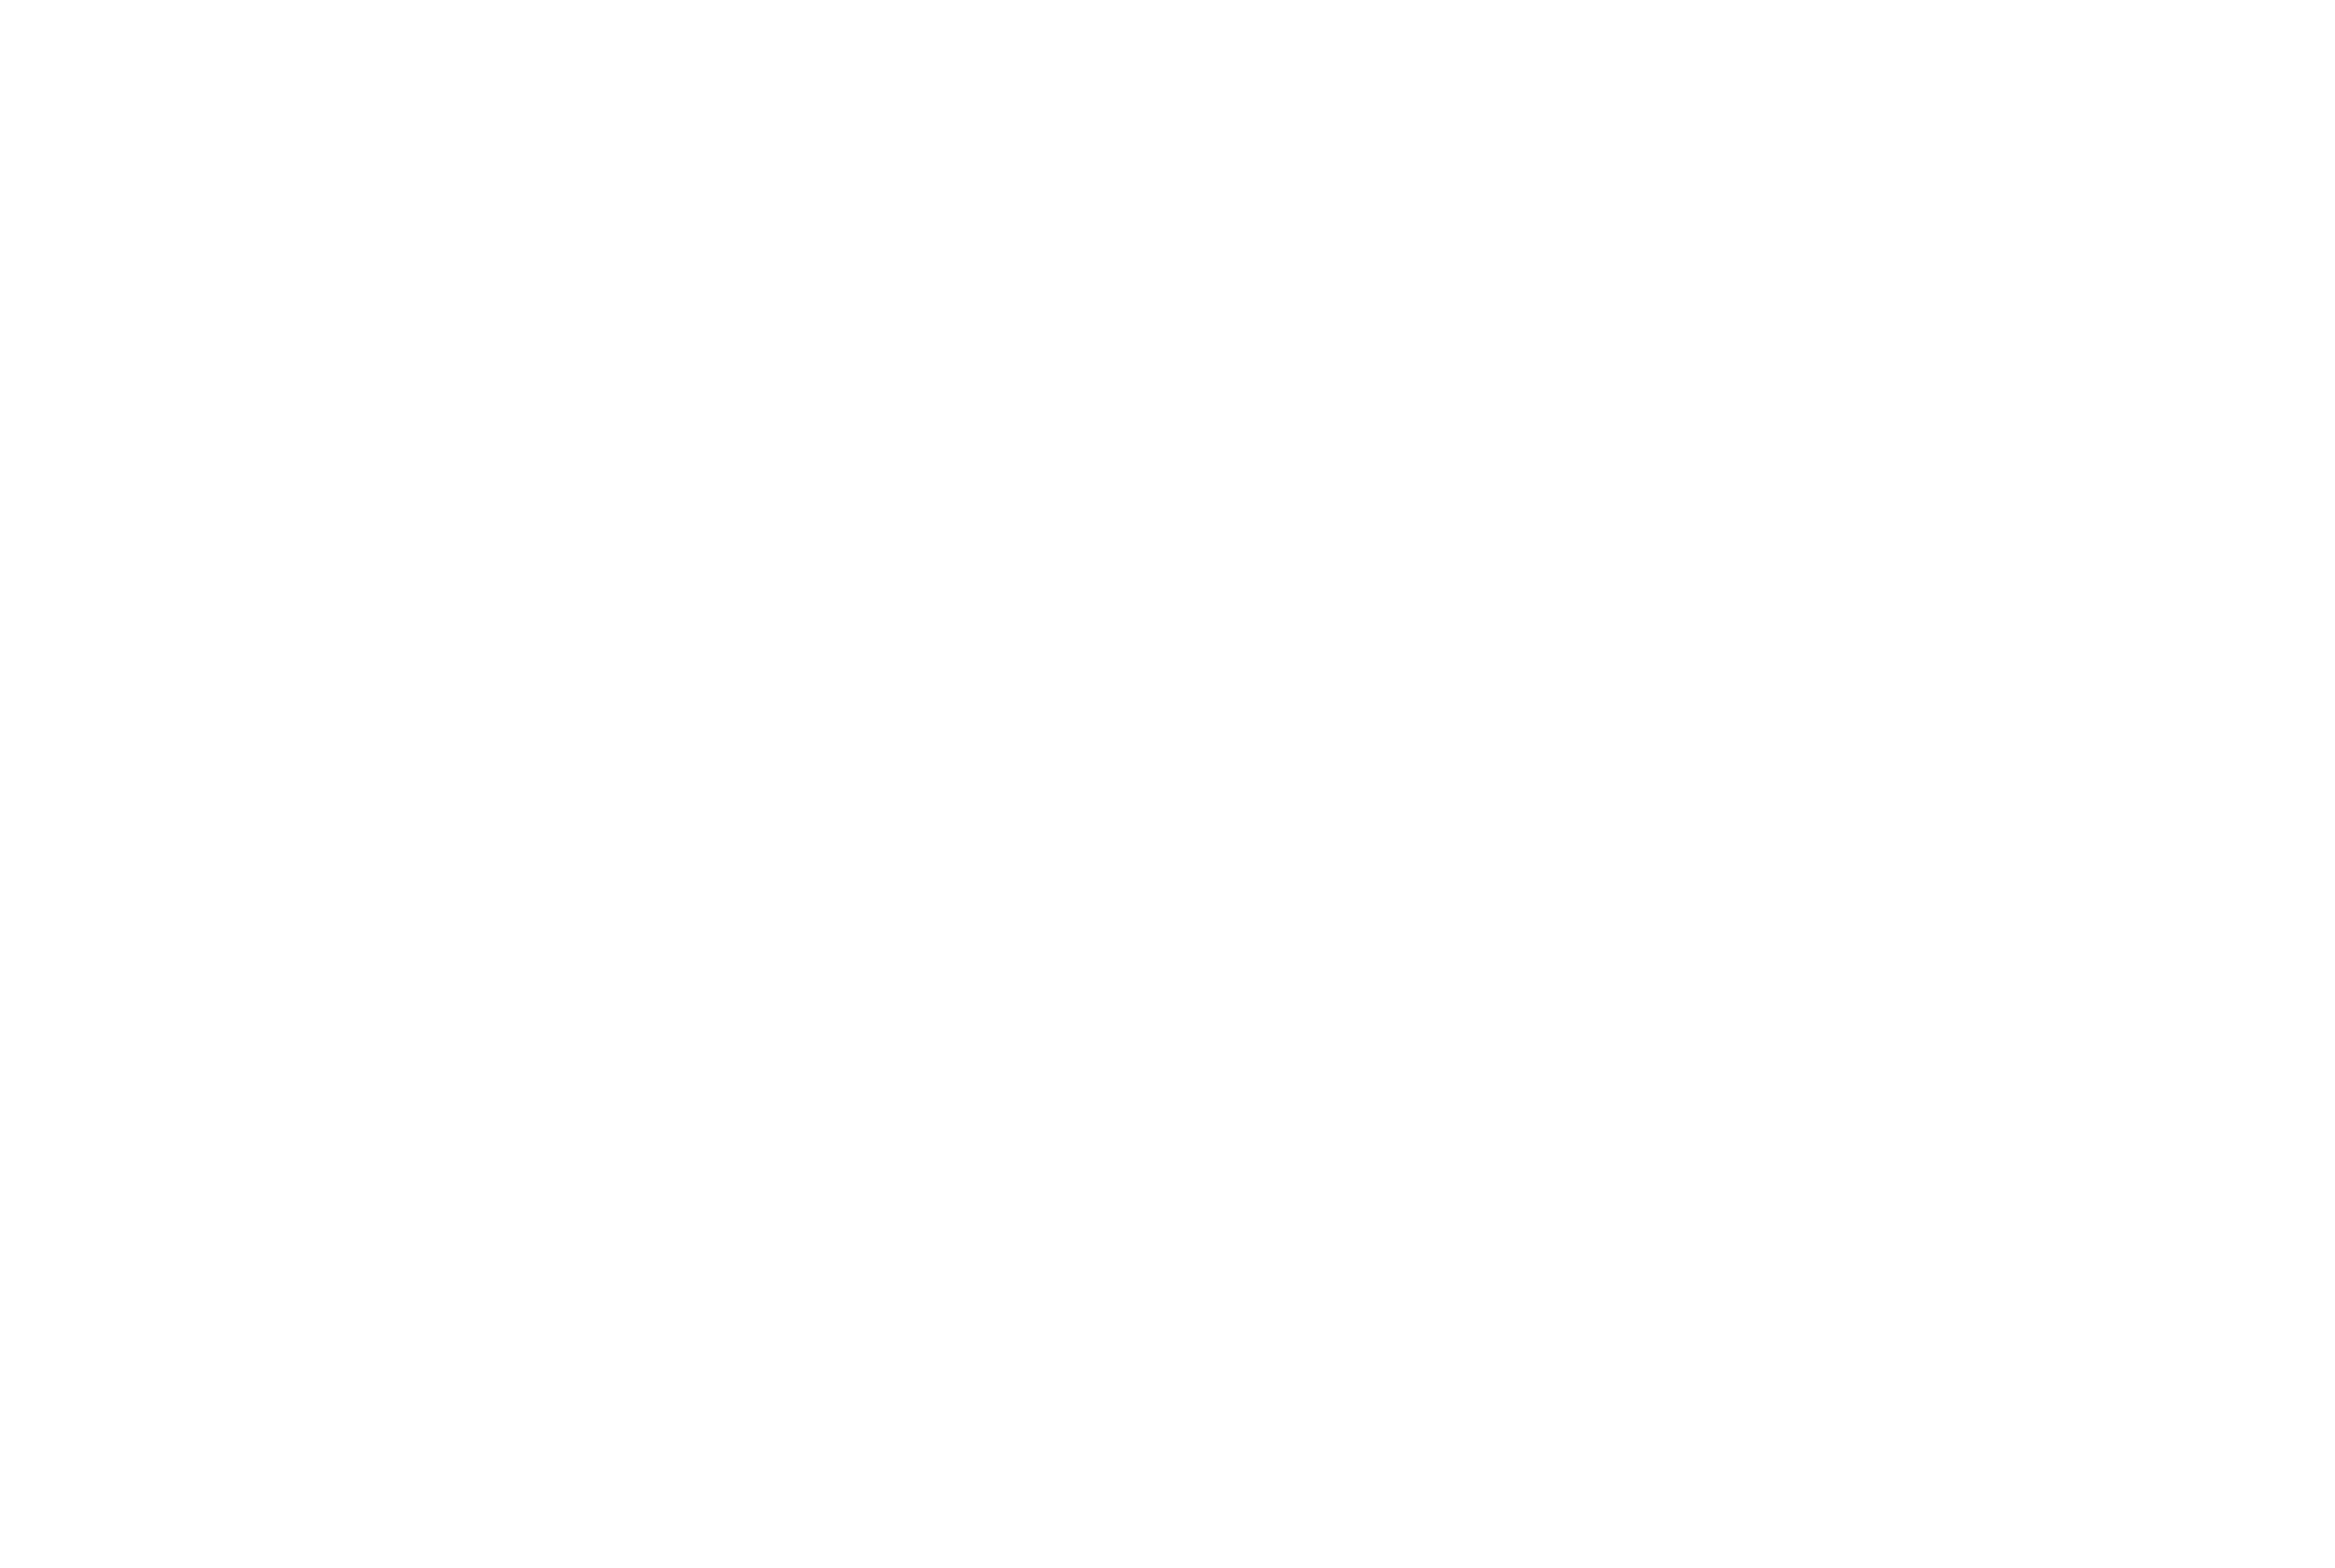 New Element Behance Revision-14.png